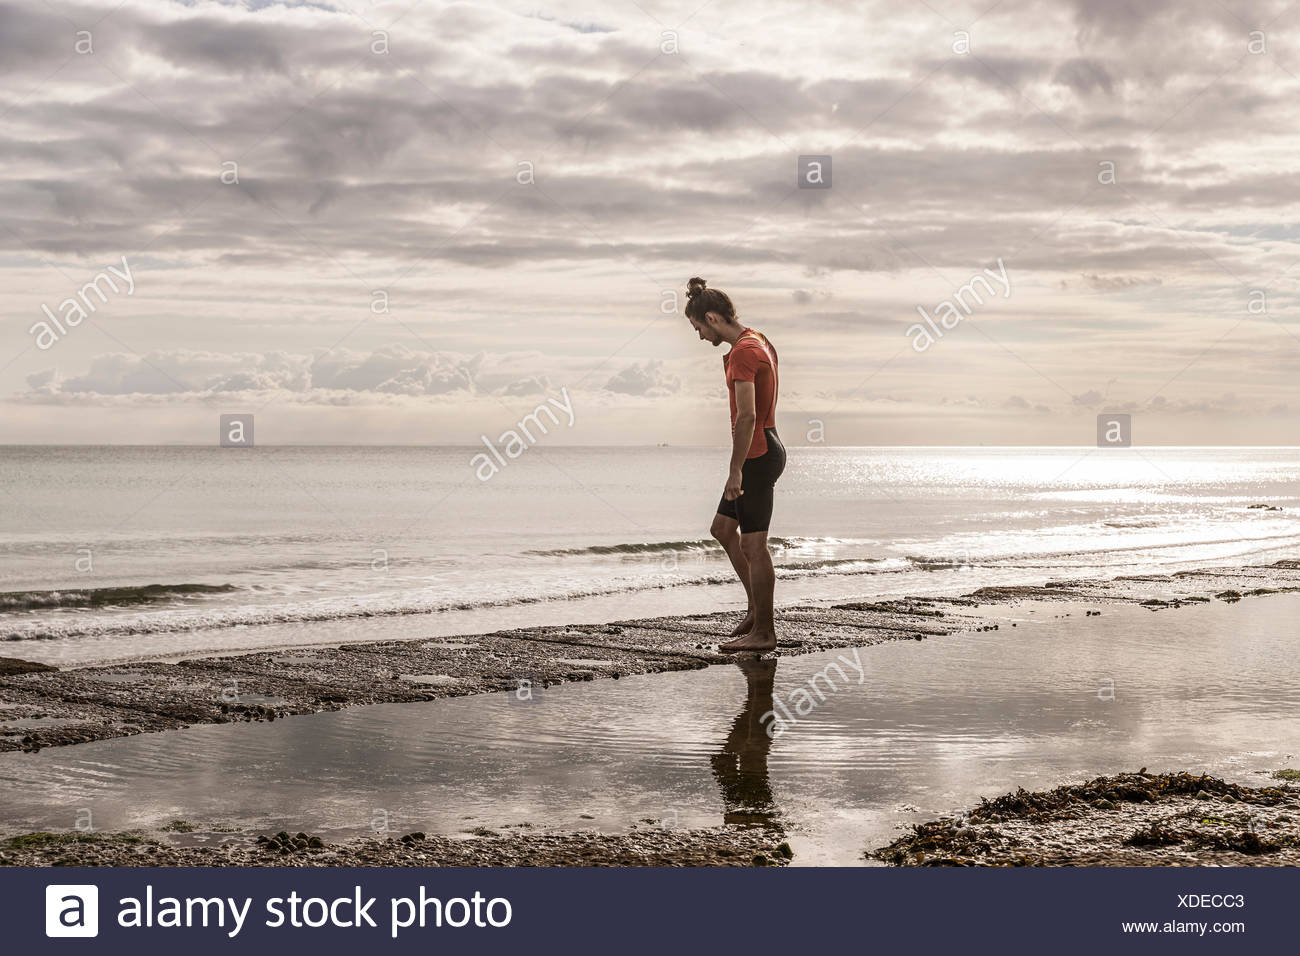 Man on shoreline looking away at view of sea - Stock Image